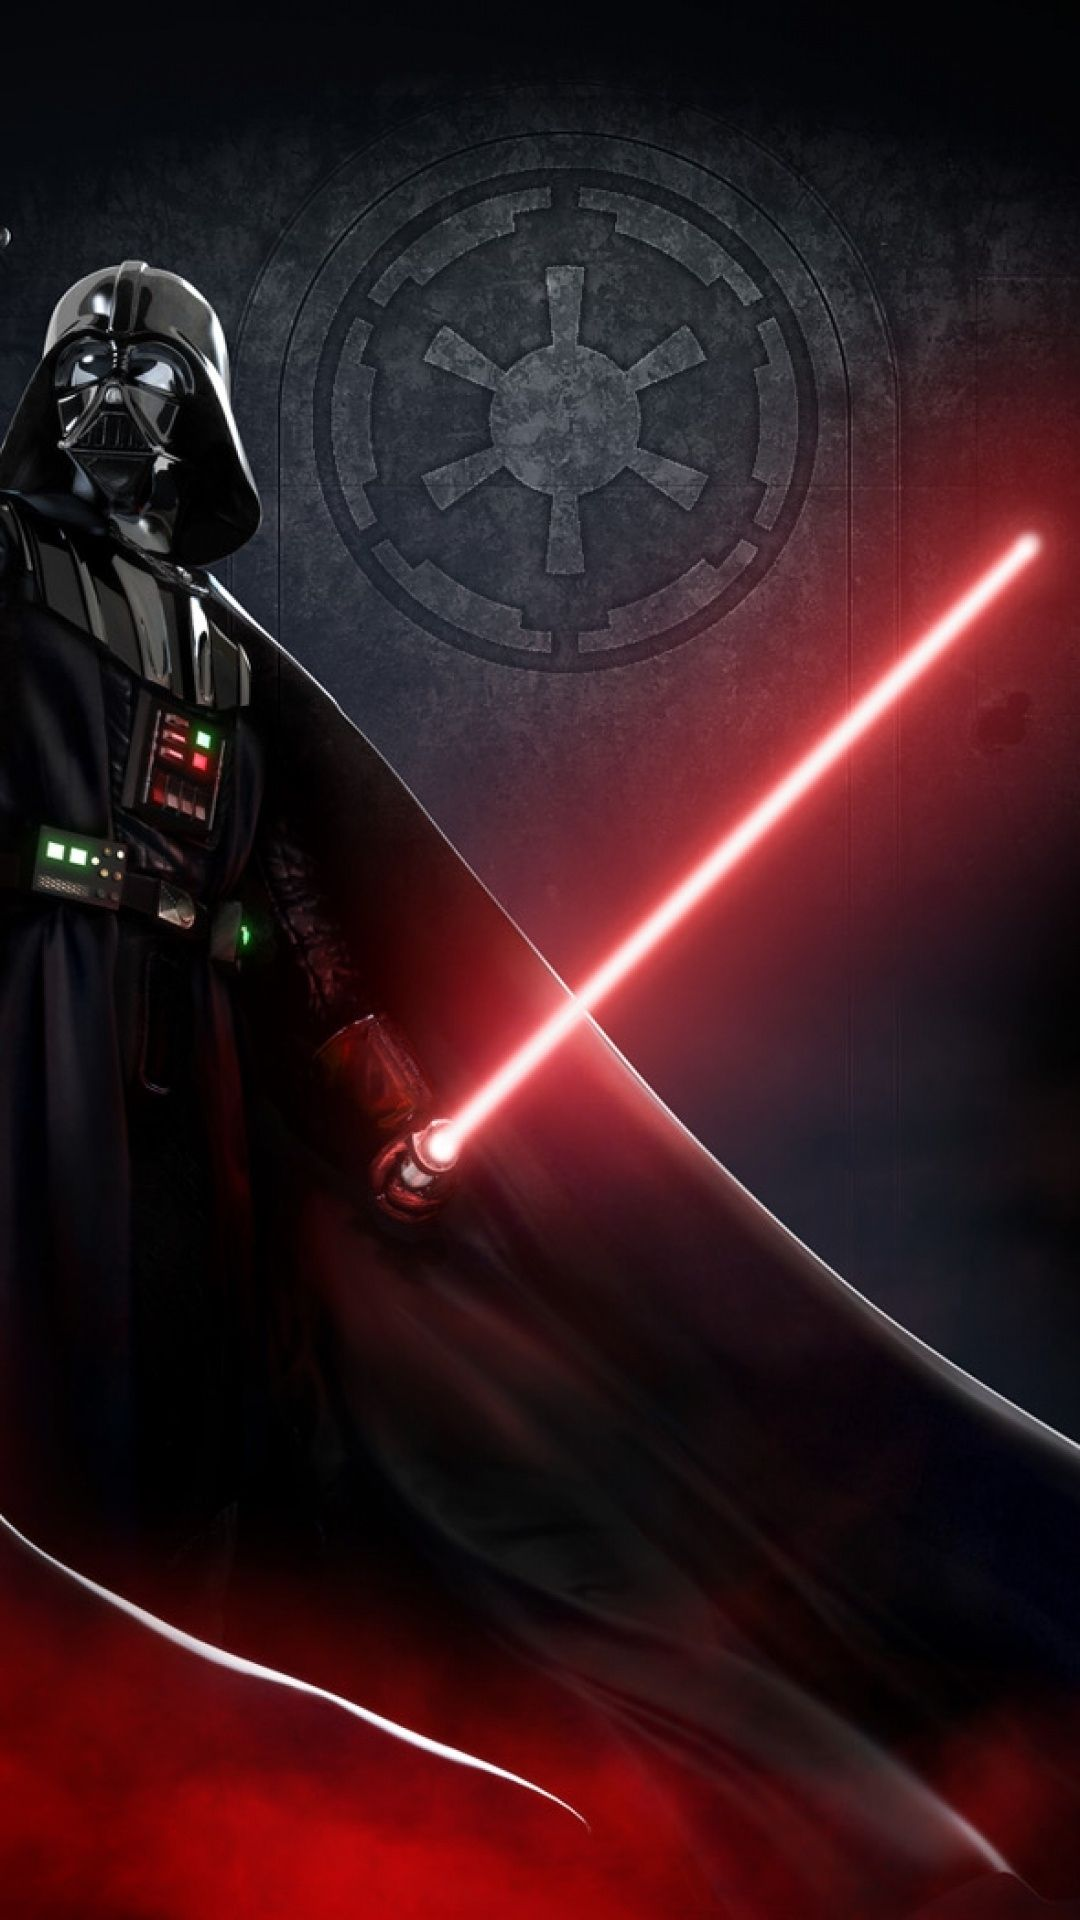 Epic Star Wars Iphone Wallpaper Download Popular Epic Star Wars